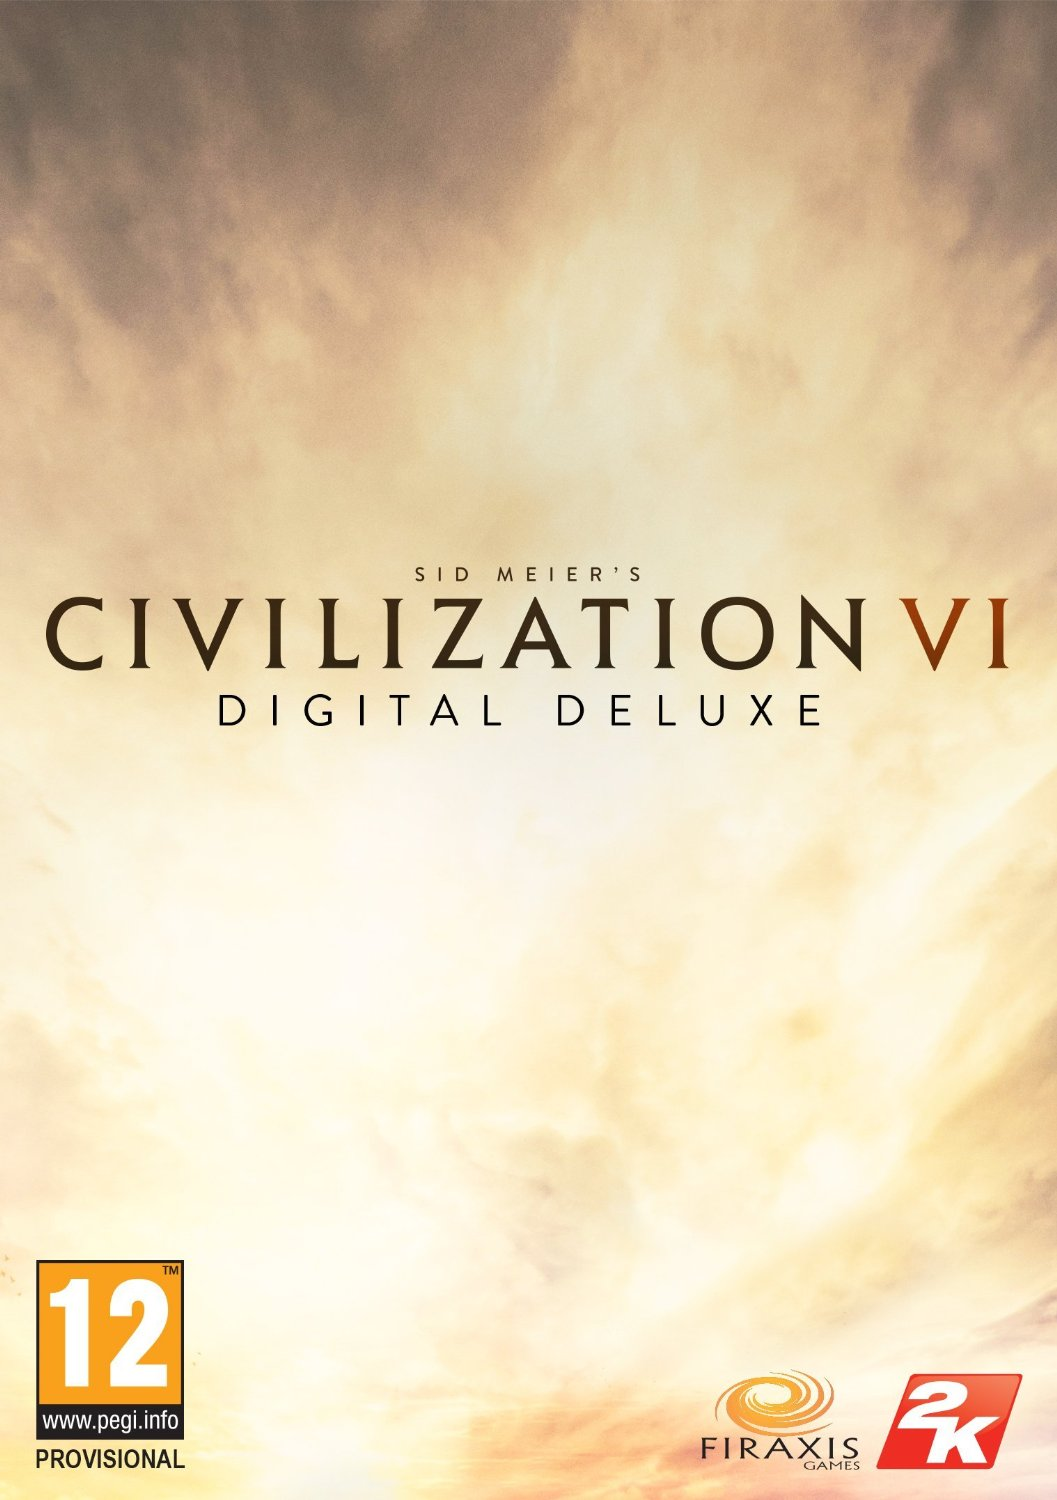 Sid Meier€S Civilization 6 Digital Deluxe